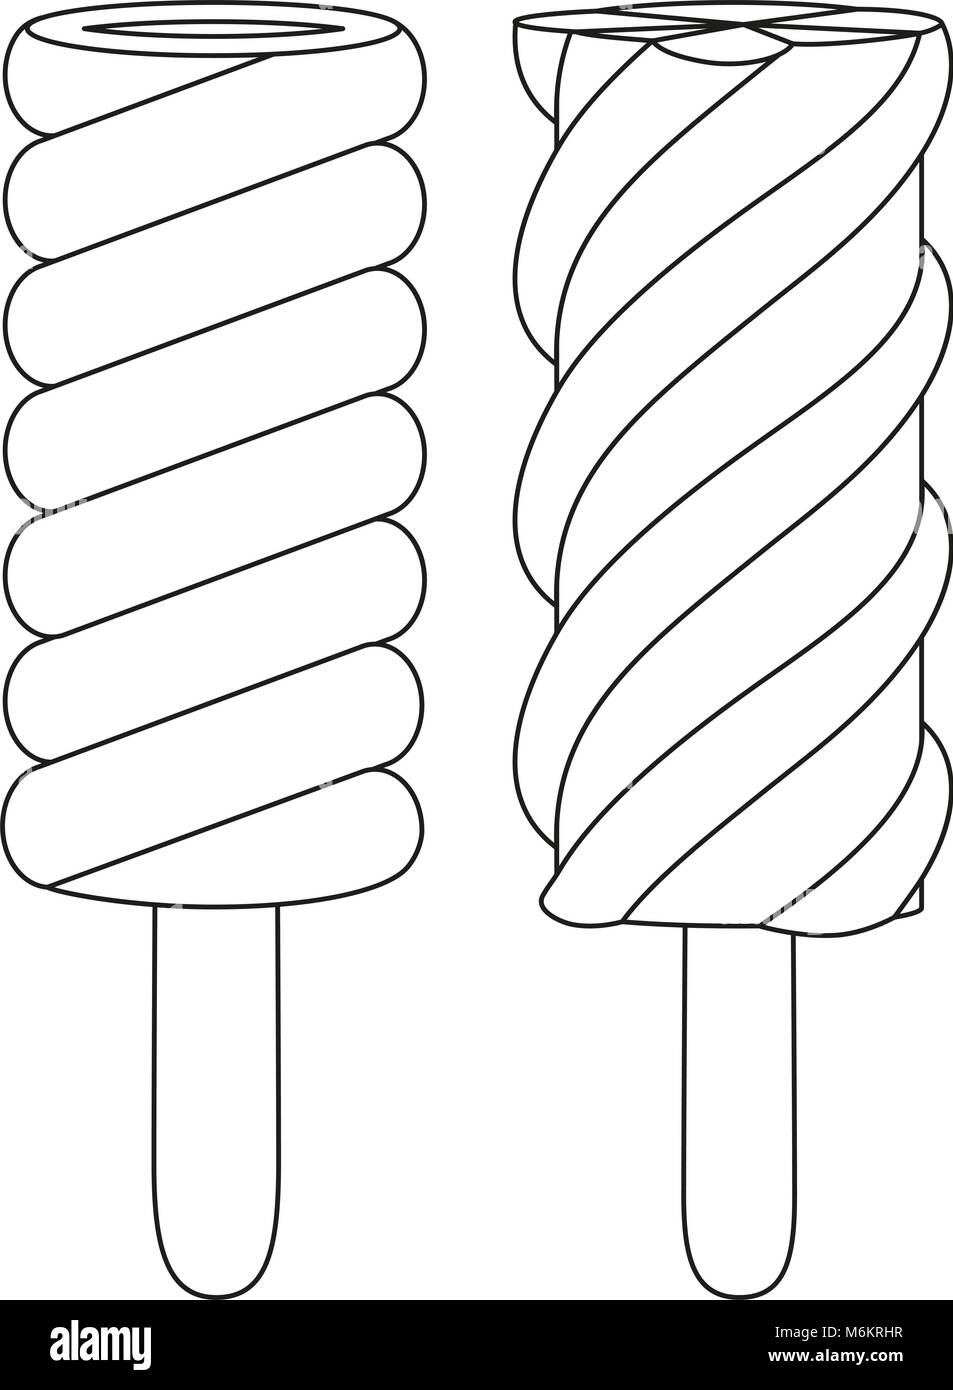 Fruit Ice Cream Popsicle Line Art Black And White Icon Set Coloring Book Page For Adults Kids Summer Fast Food Vector Illustration Gift Card